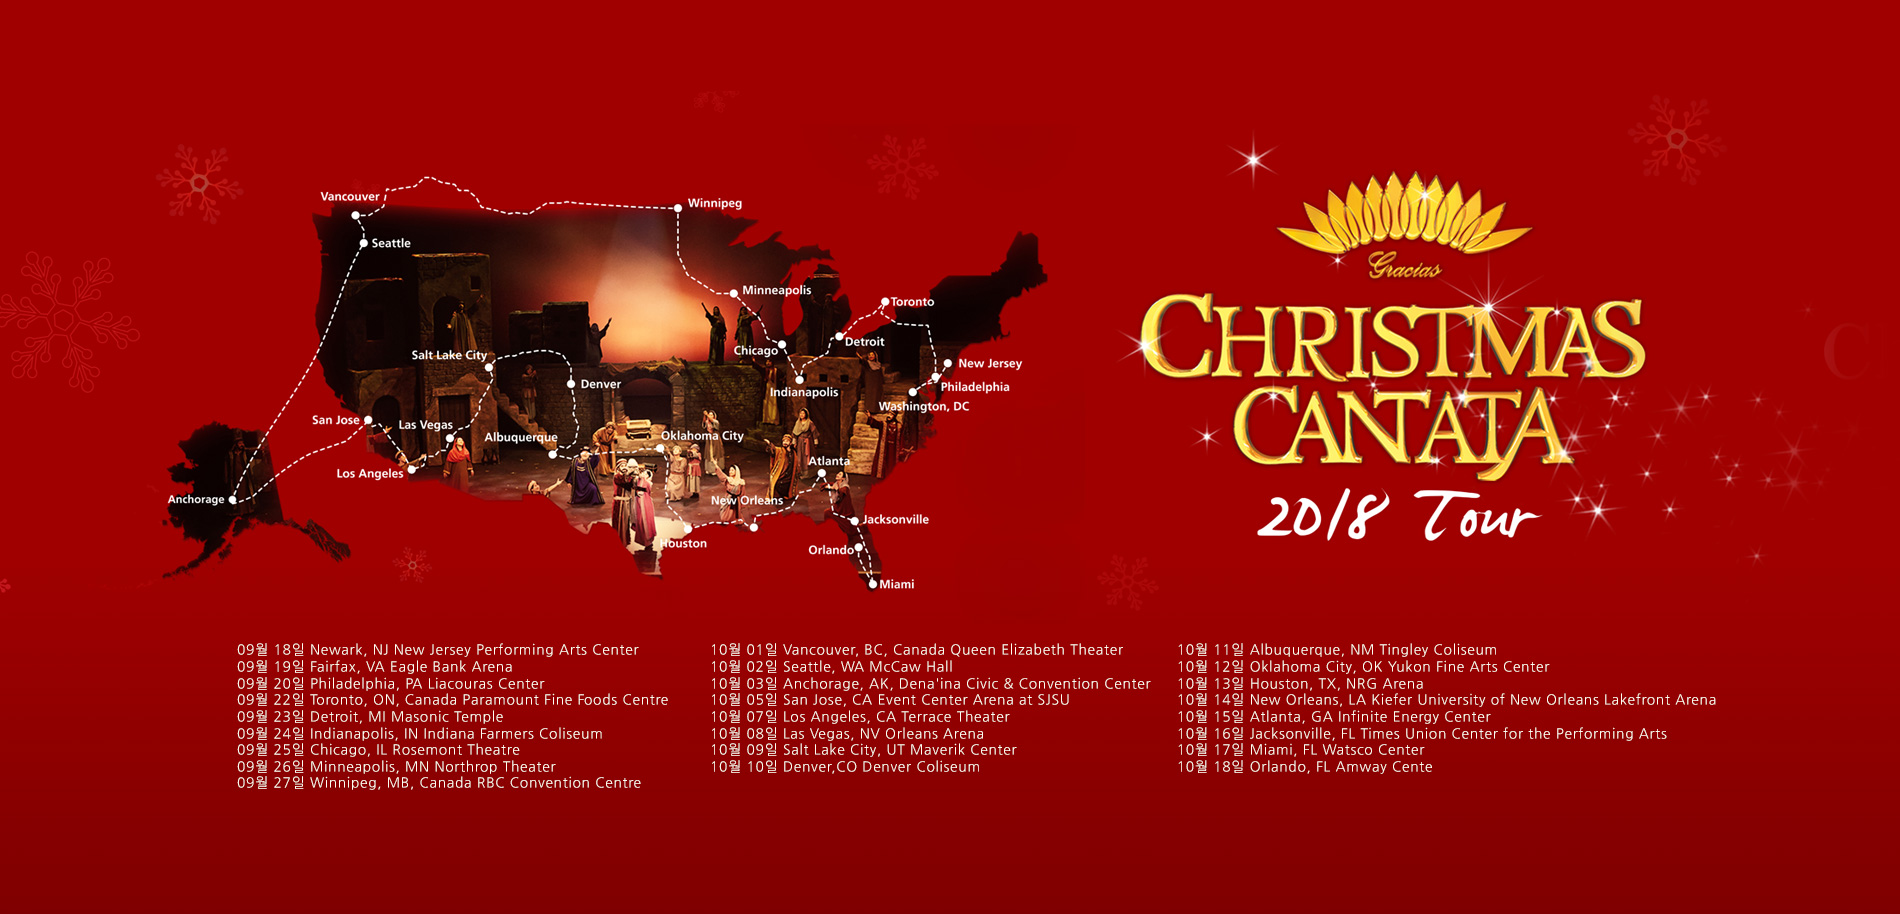 Christmas Cantata 2019 New Orleans.Gracias Choir Official Website